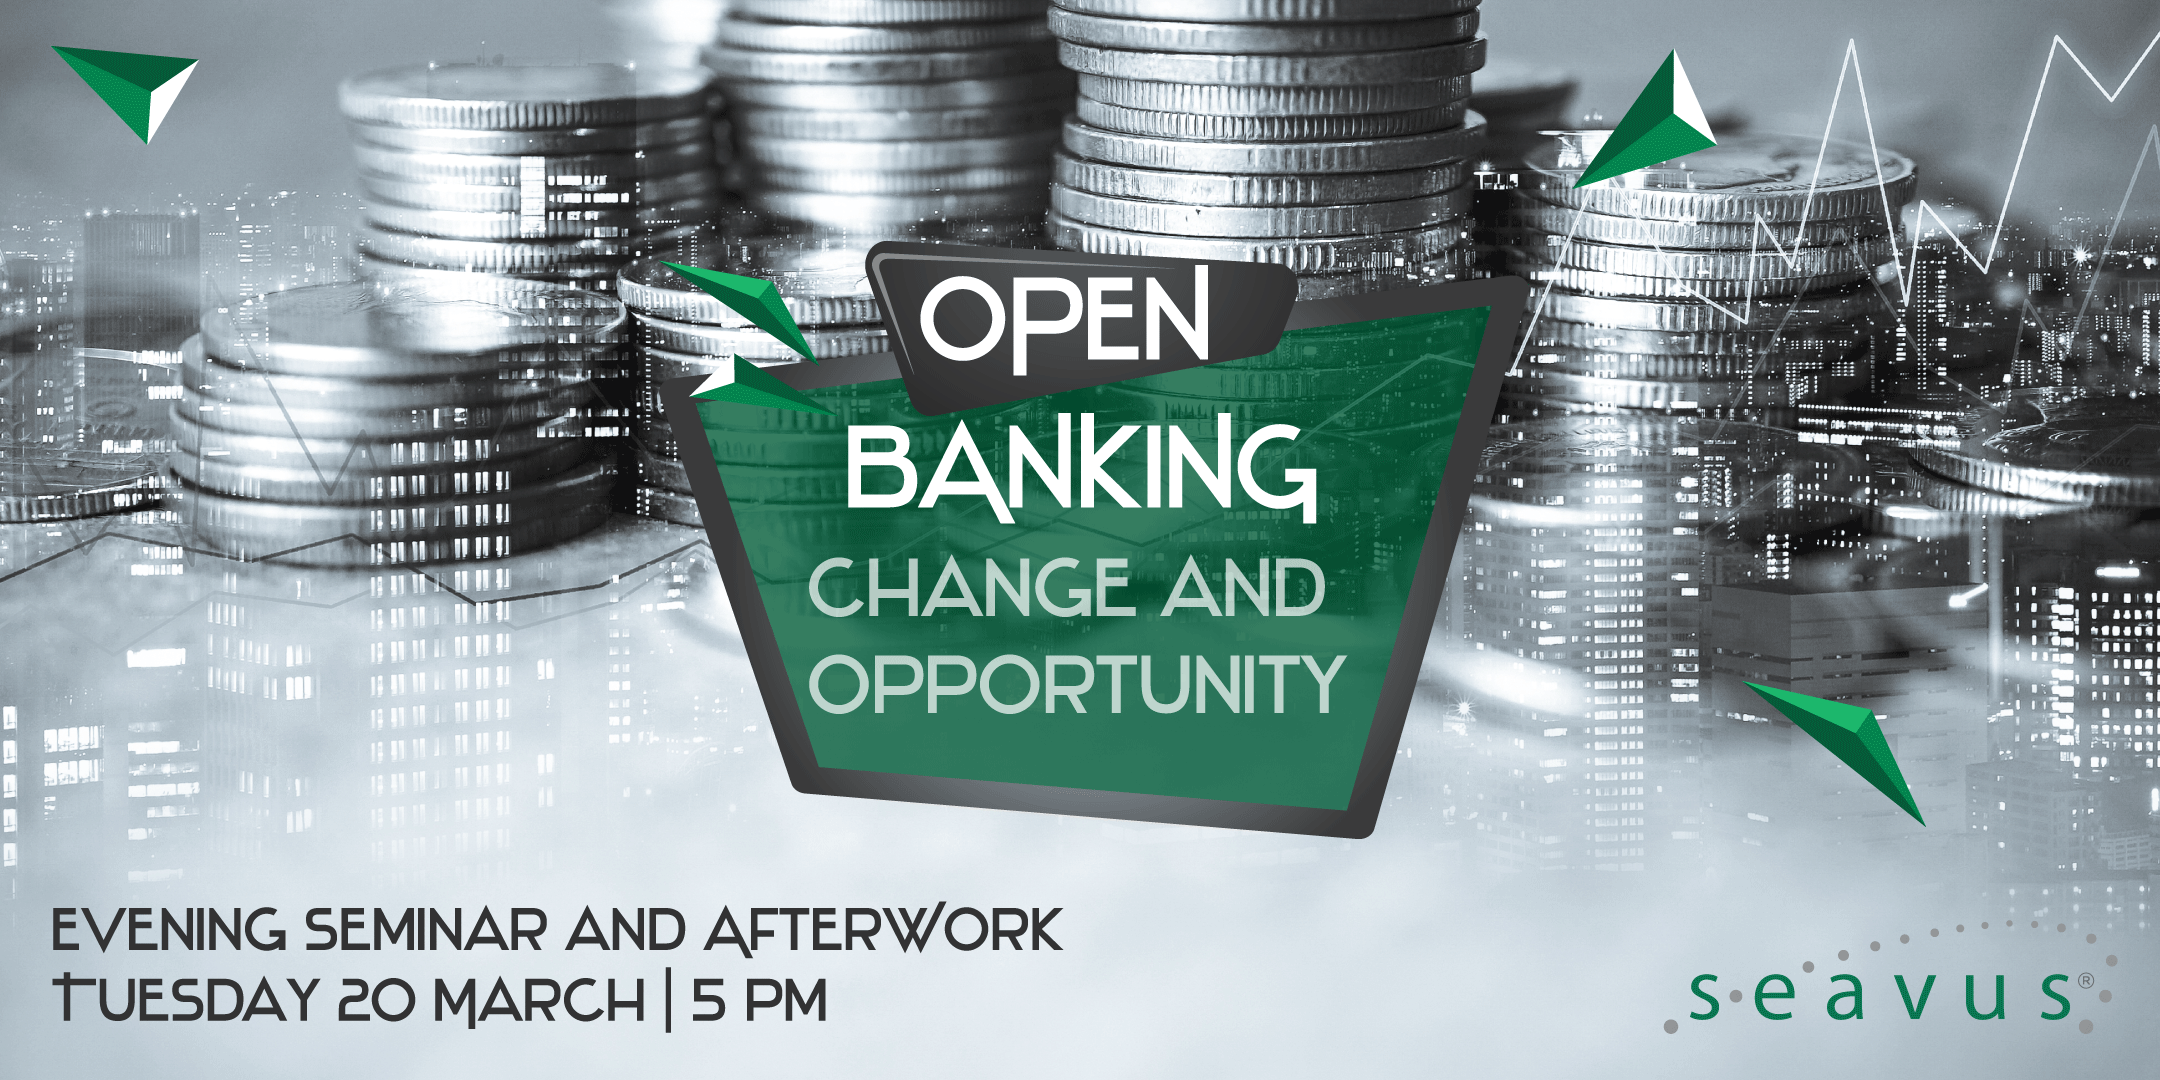 SEMINAR: OPEN BANKING – CHANGE AND OPPORTUNITY